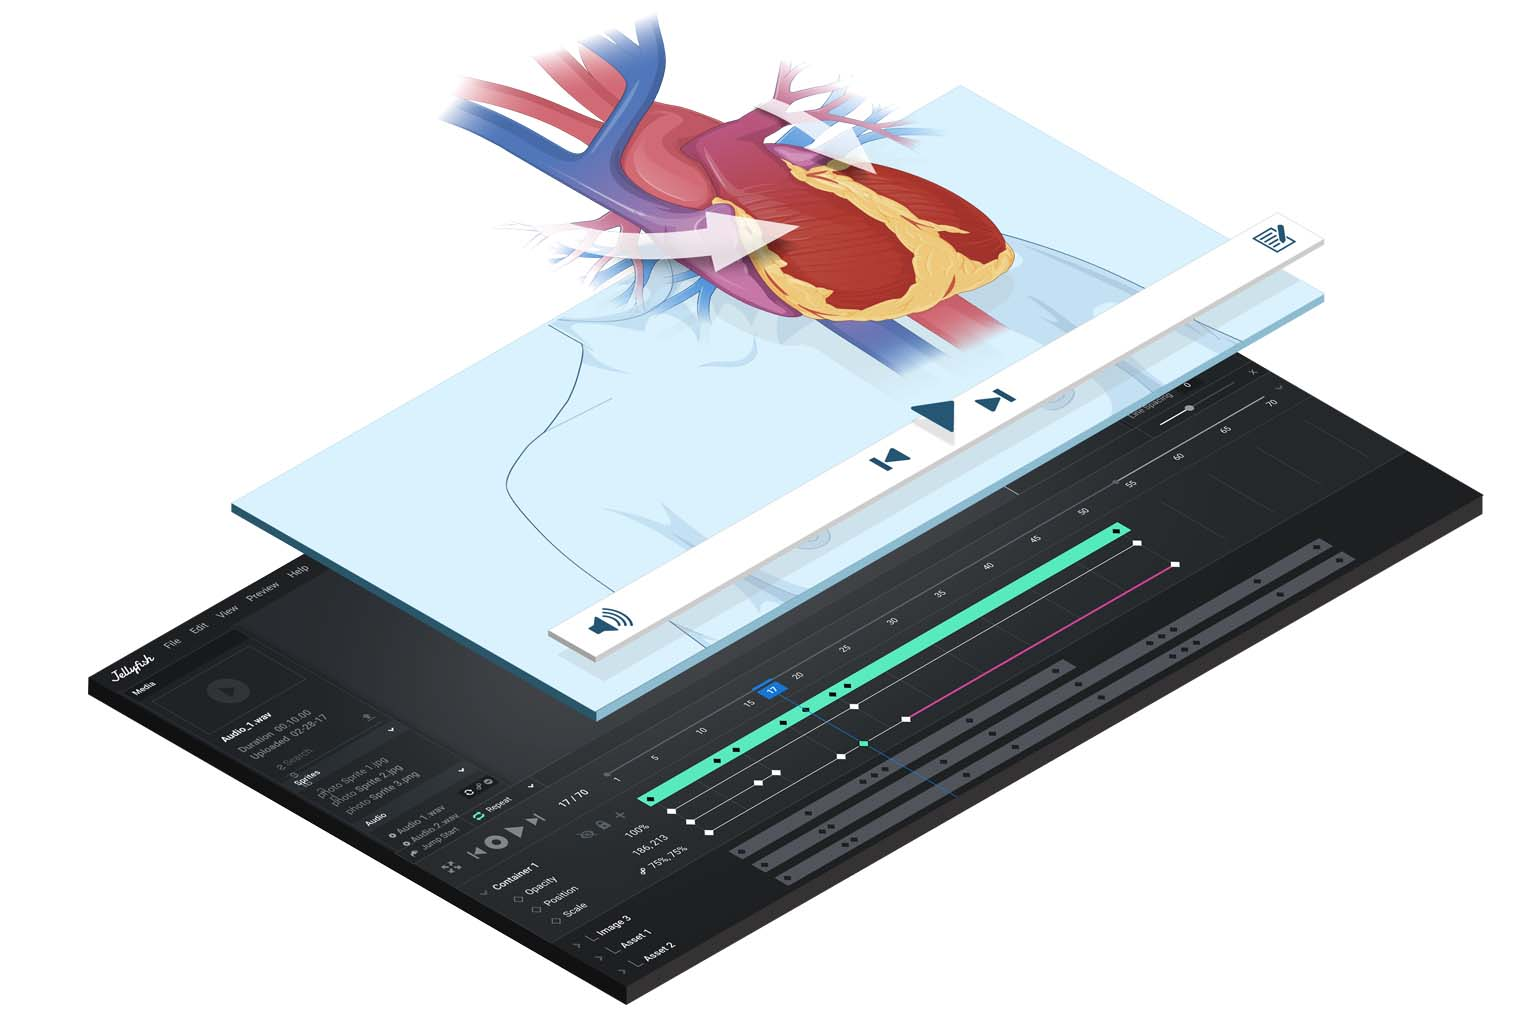 graphic overlay of heart and video panel